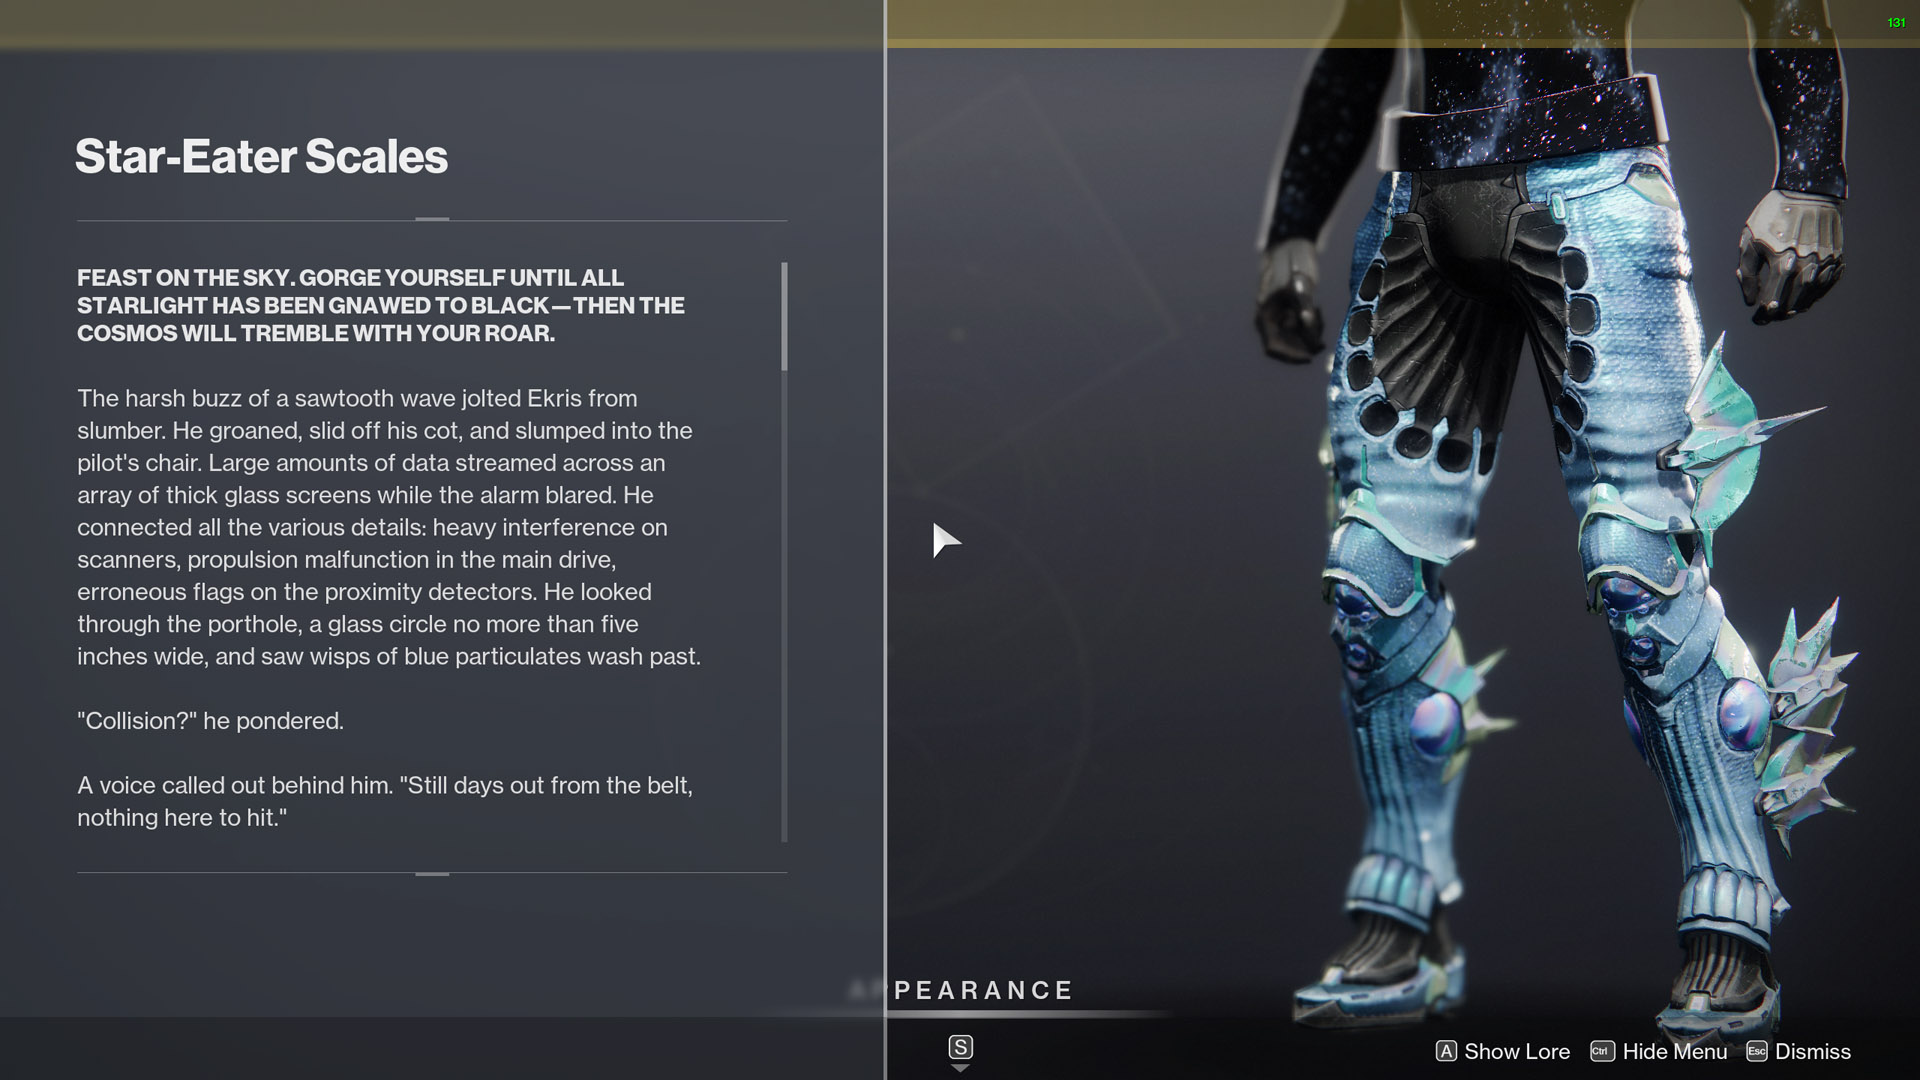 destiny 2 star-eater scales lore